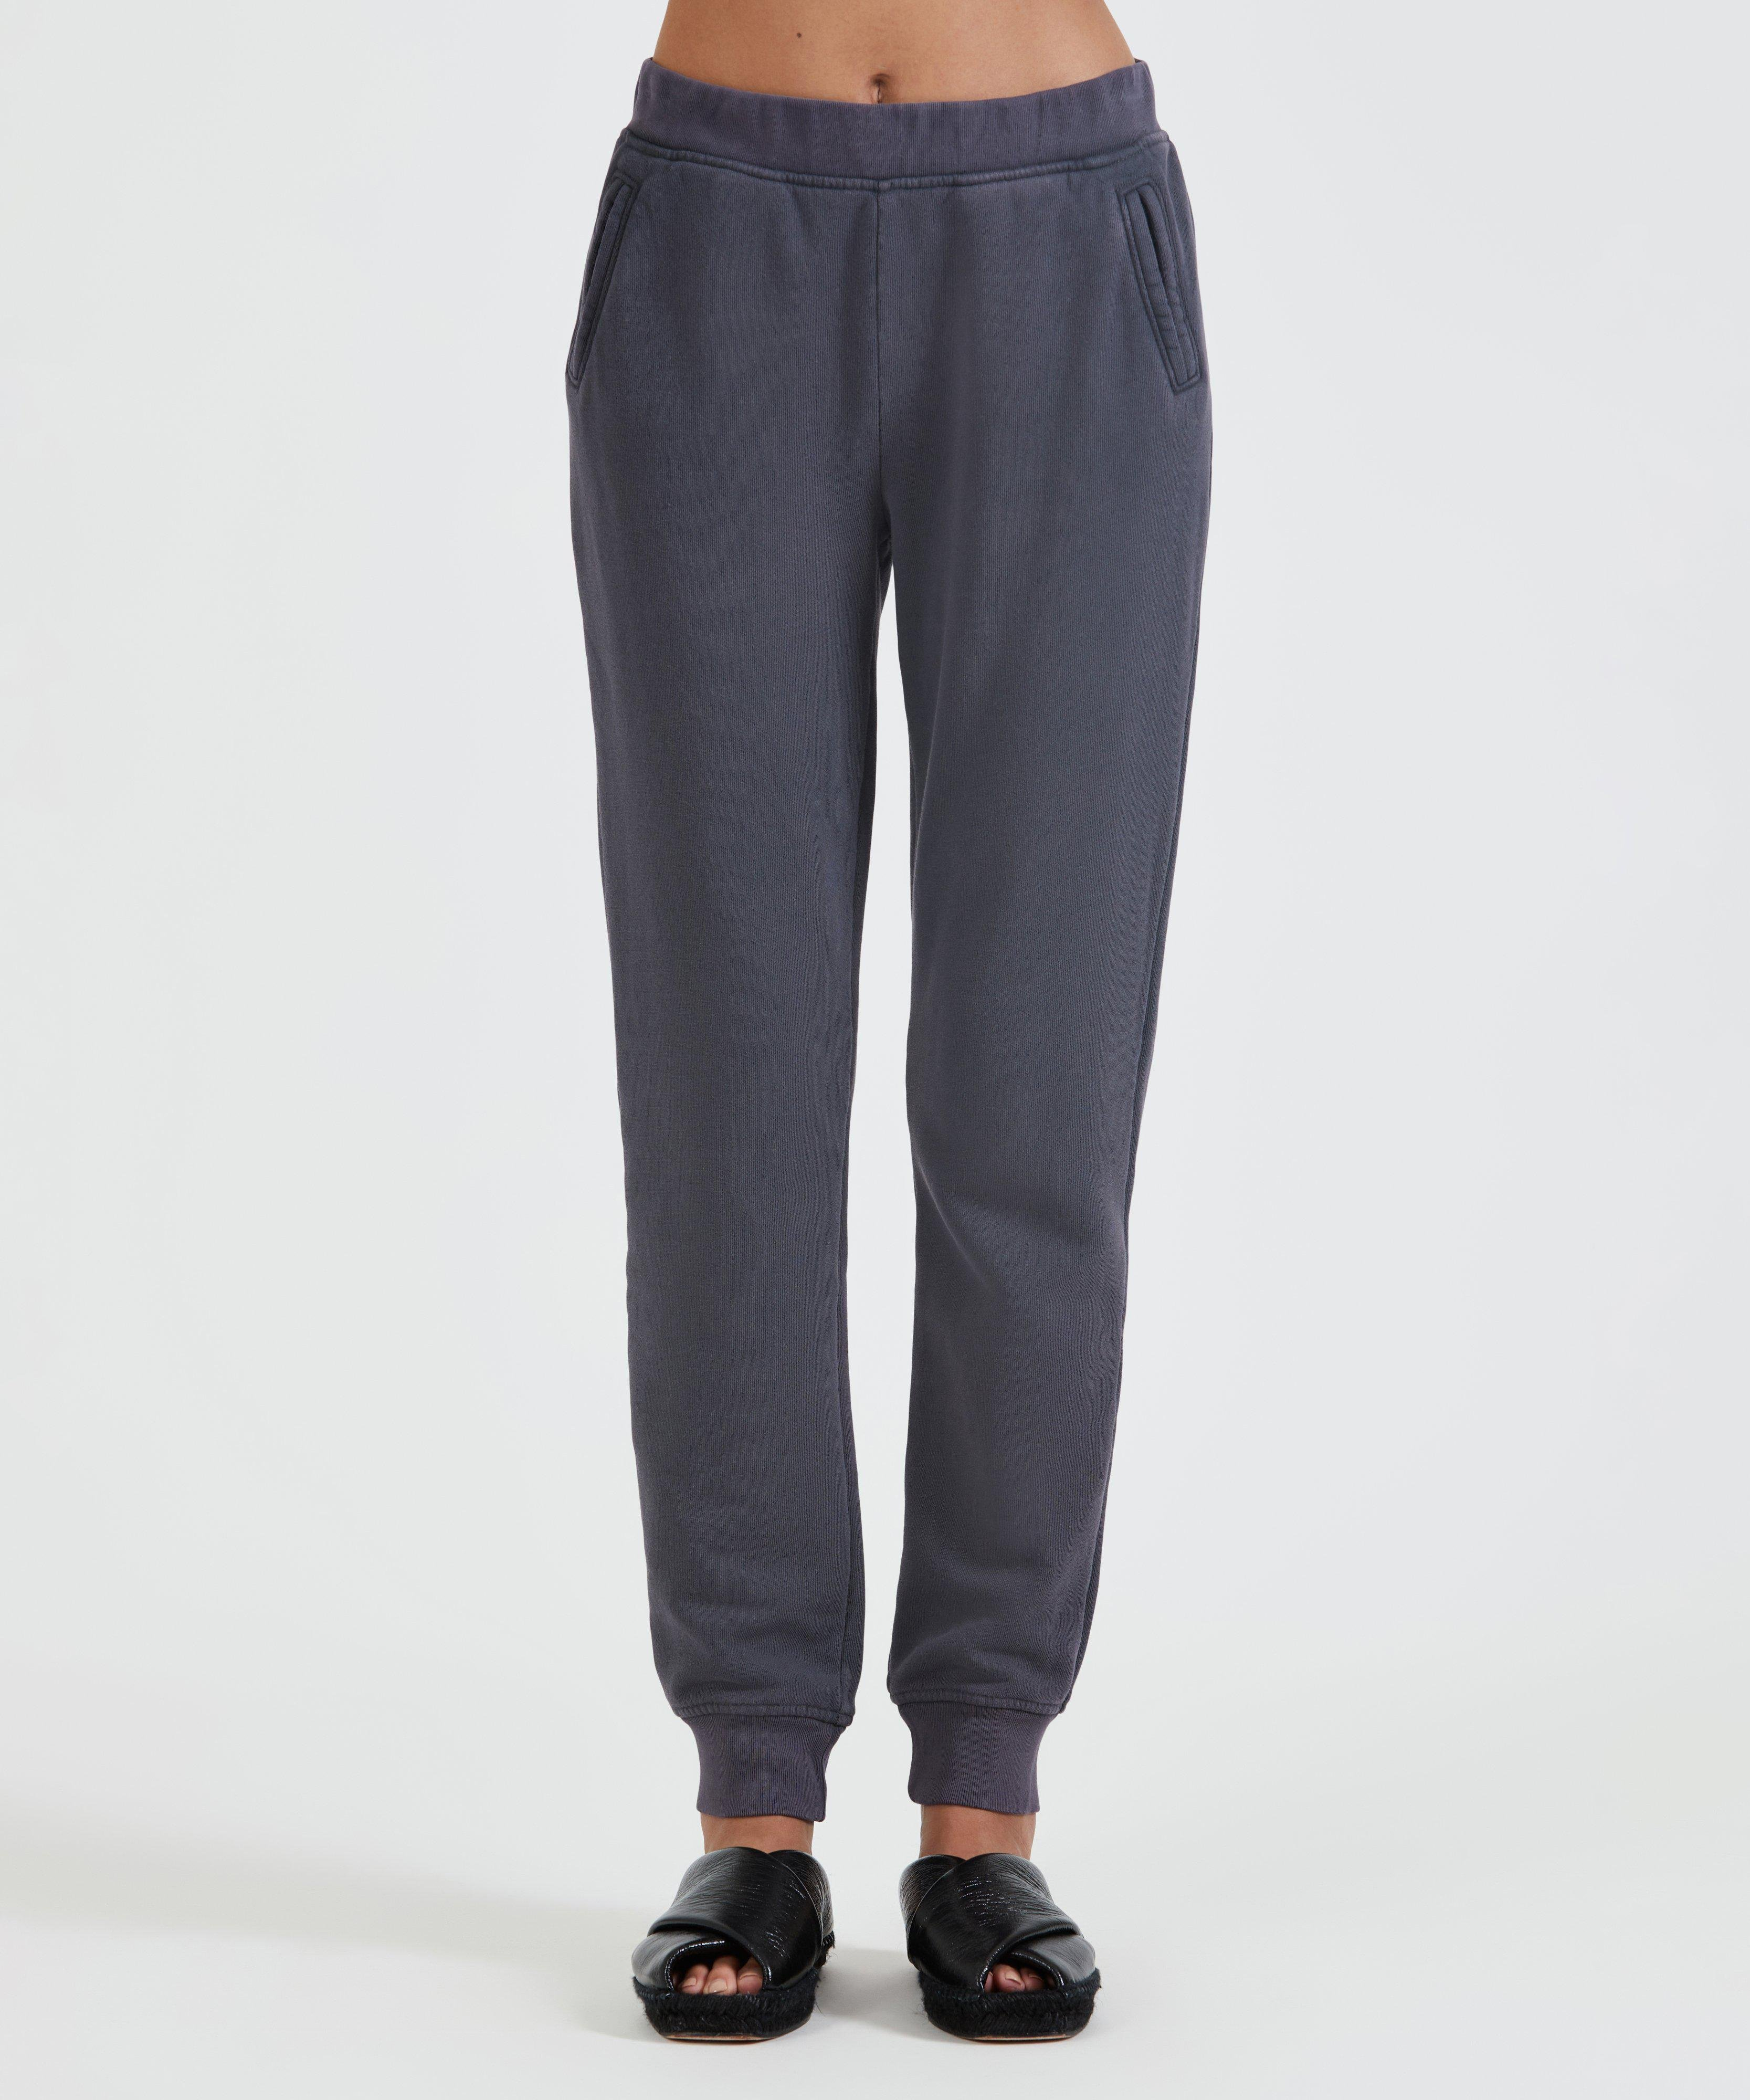 French Terry Sweatpant - Dusk